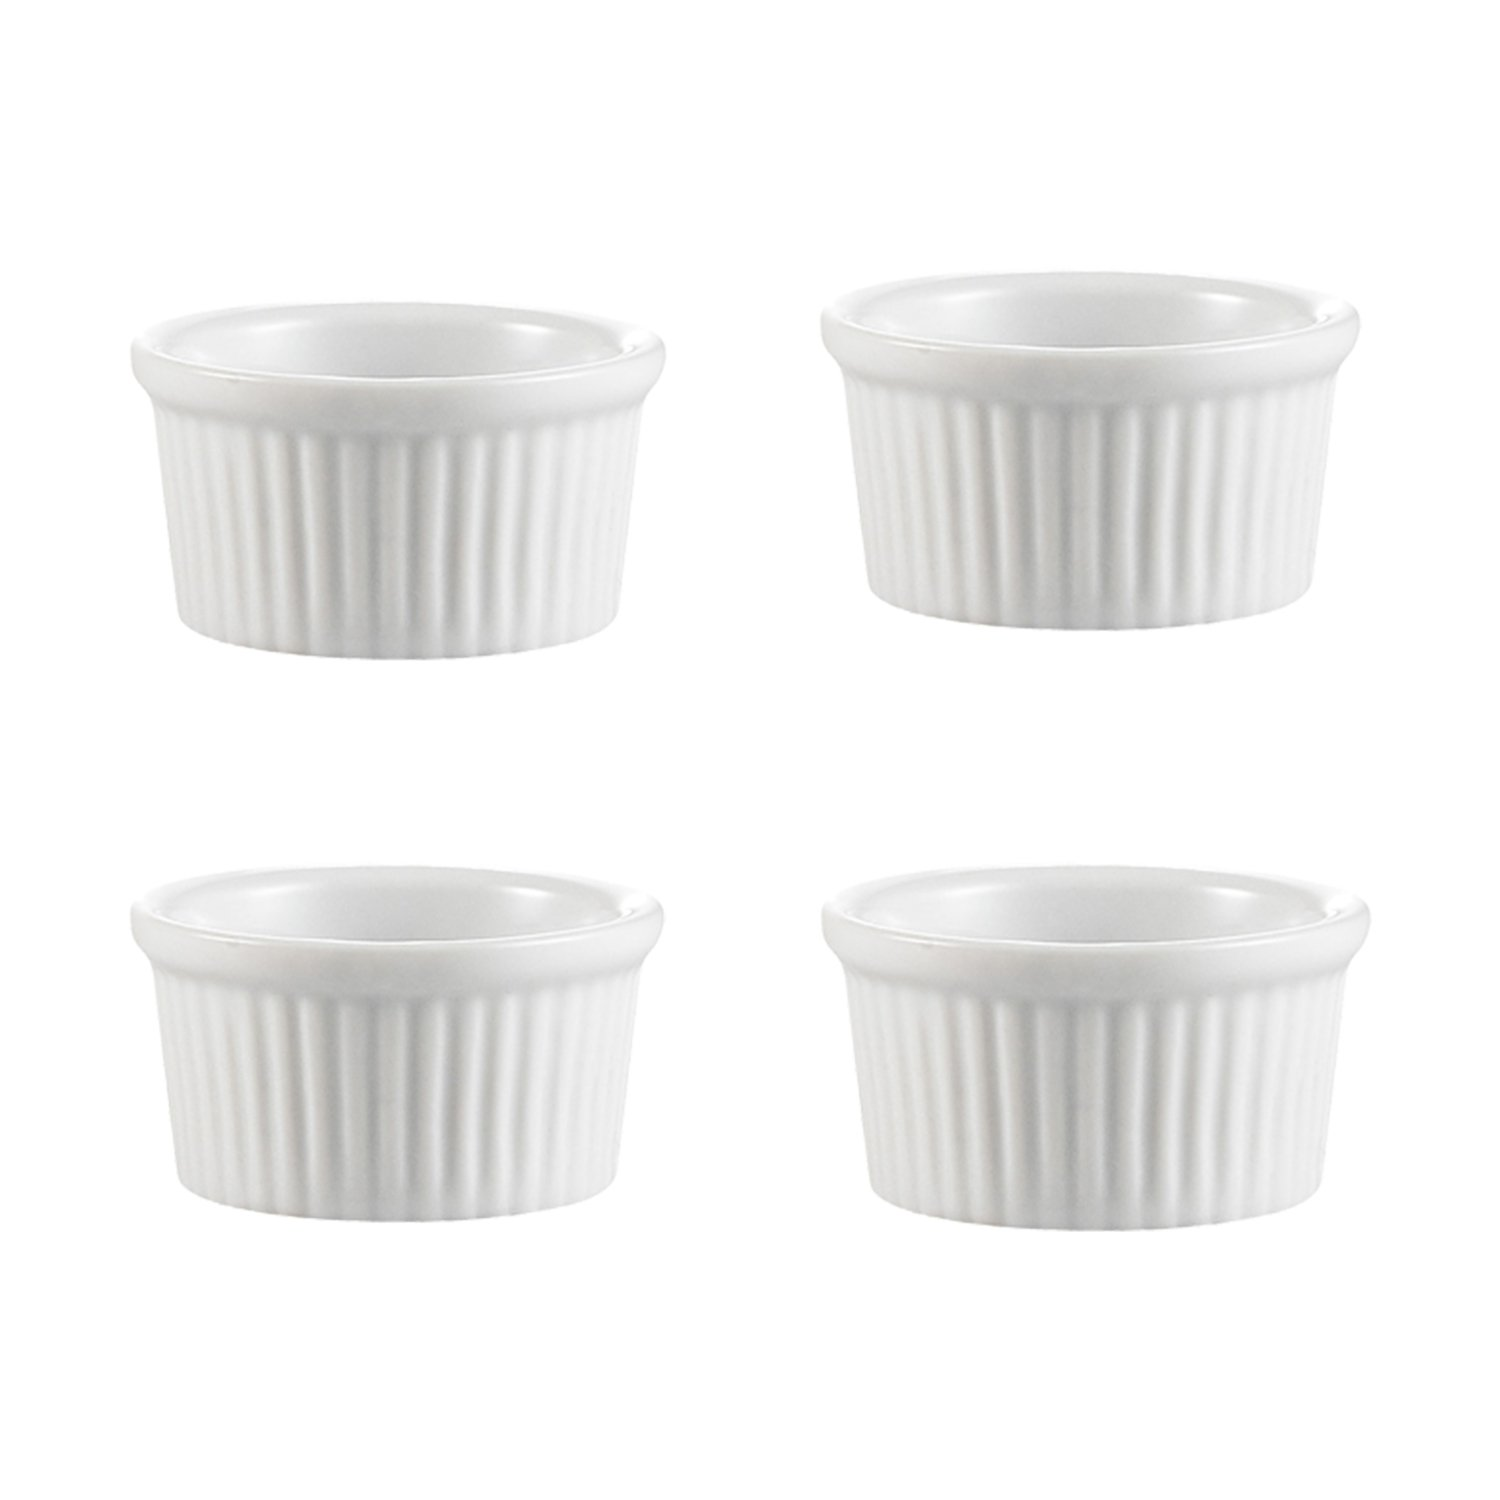 Professional Porcelain Ramekins Bakeware, 4 OZ Souffle Cups Dishes Fine White (Set of 4) Easy to Clean Oven Safe Culinary Depot CUL-SCD34